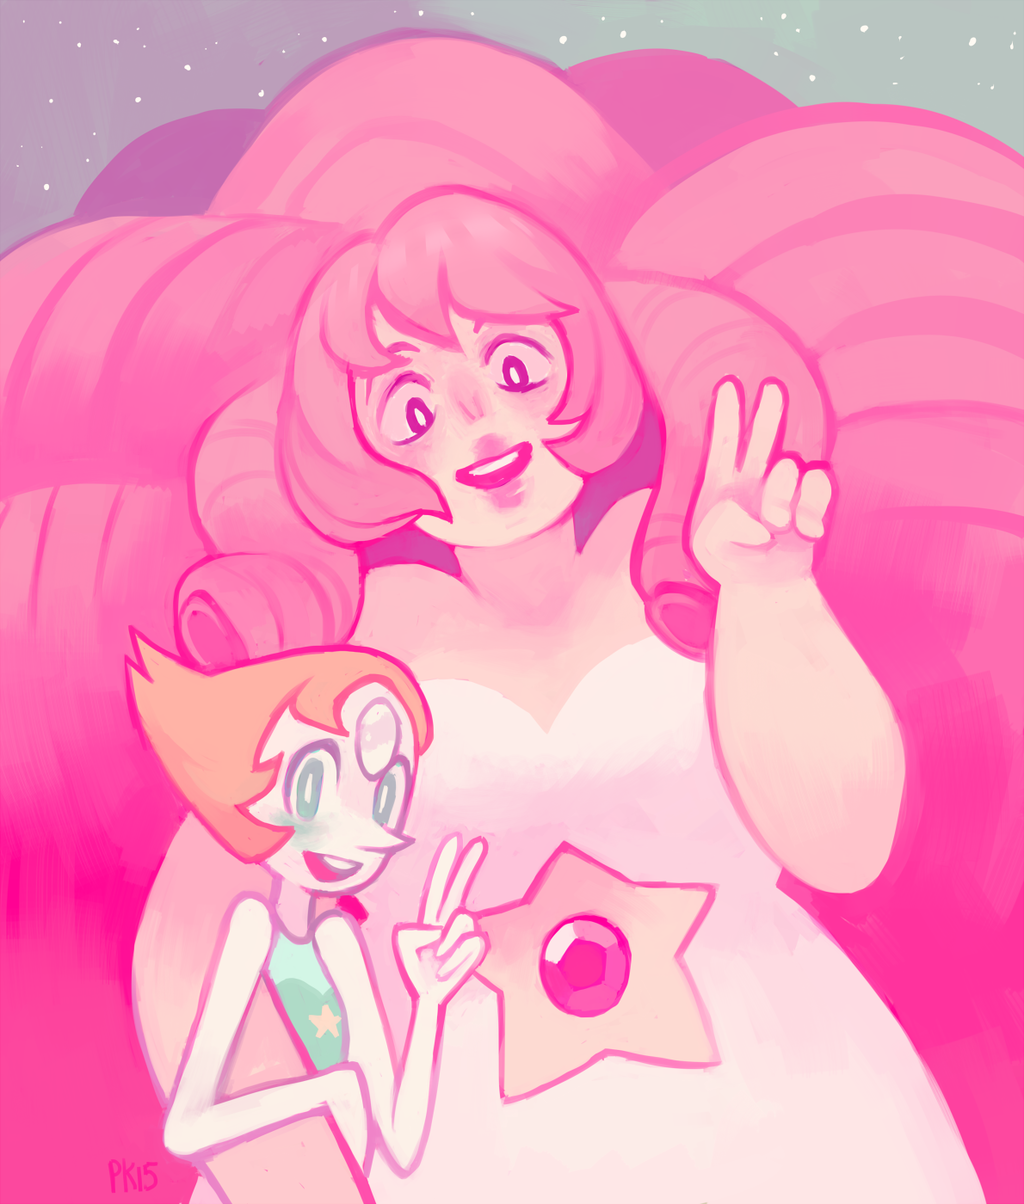 Most recent image: Rose and Pearl